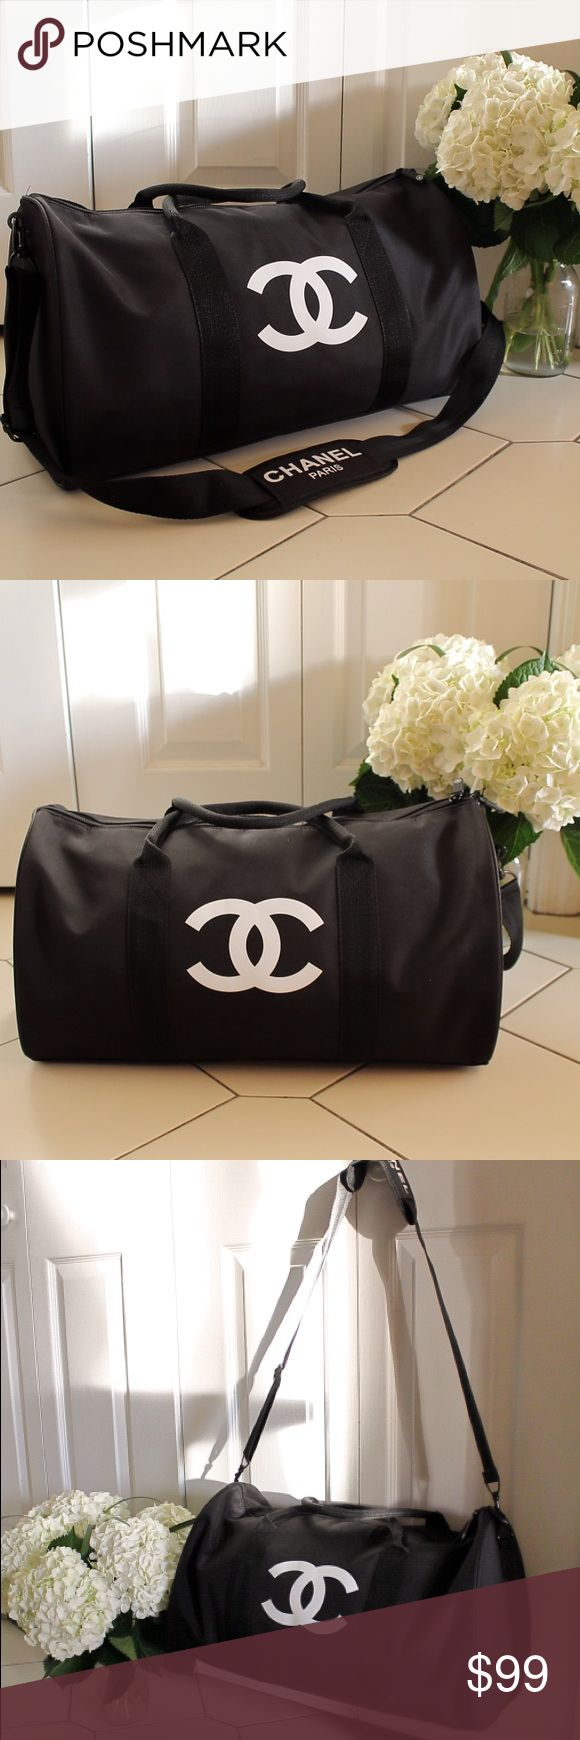 "🔥LAST ONE🔥Authentic Chanel Vip Gym Duffle Bag Authentic Chanel Vip Gift Gym Duffle Bag   CHANEL VIP GIFT TRAVEL BAG GYM BAG CROSS BODY BAG SHOULDER BAG -NEW New in original packaging. Authentic VIP Gift given when you make a certain amount purchase to qualify for their free gift offers. This was a VIP gift from Chanel Beaute corner, does NOT come with hologram sticker, serial number or tags. Dimensions L 48cm X H 32cm In inches L 19"" X H 13"" CHANEL Bags Shoulder Bags"